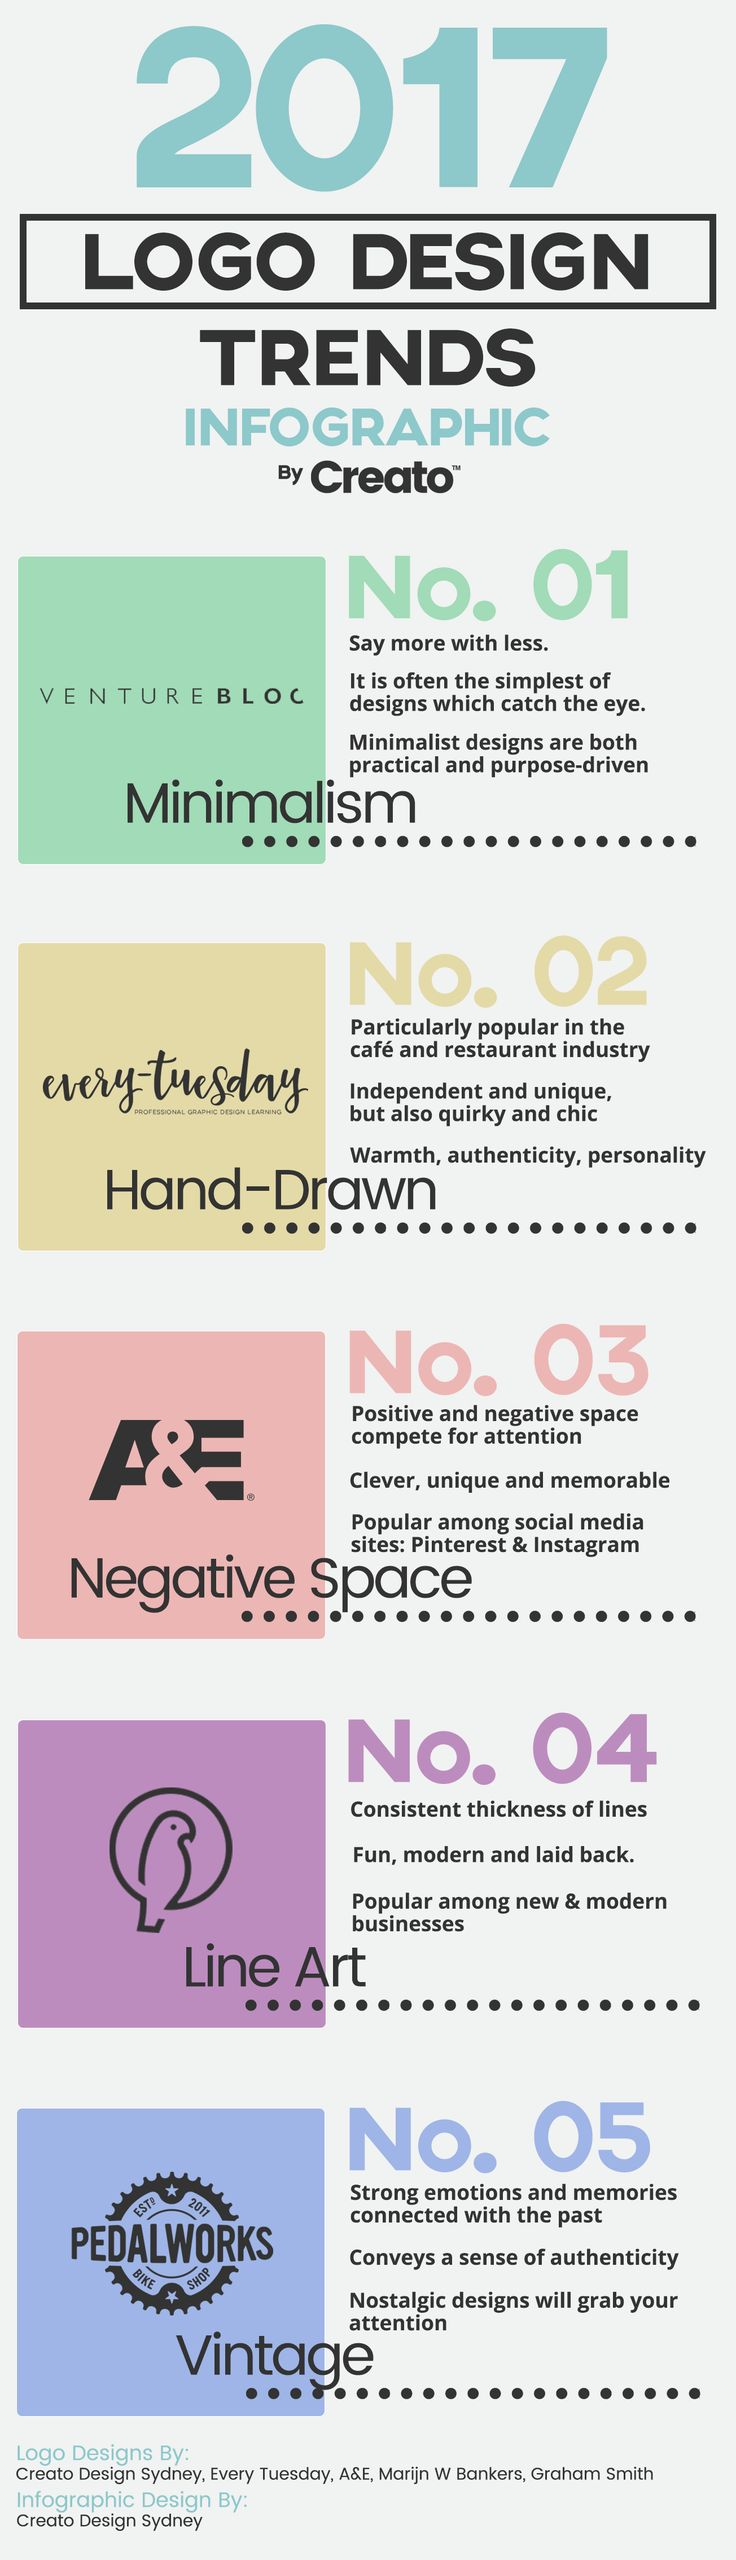 2017 Logo Design trends by https://www.creato.com.au